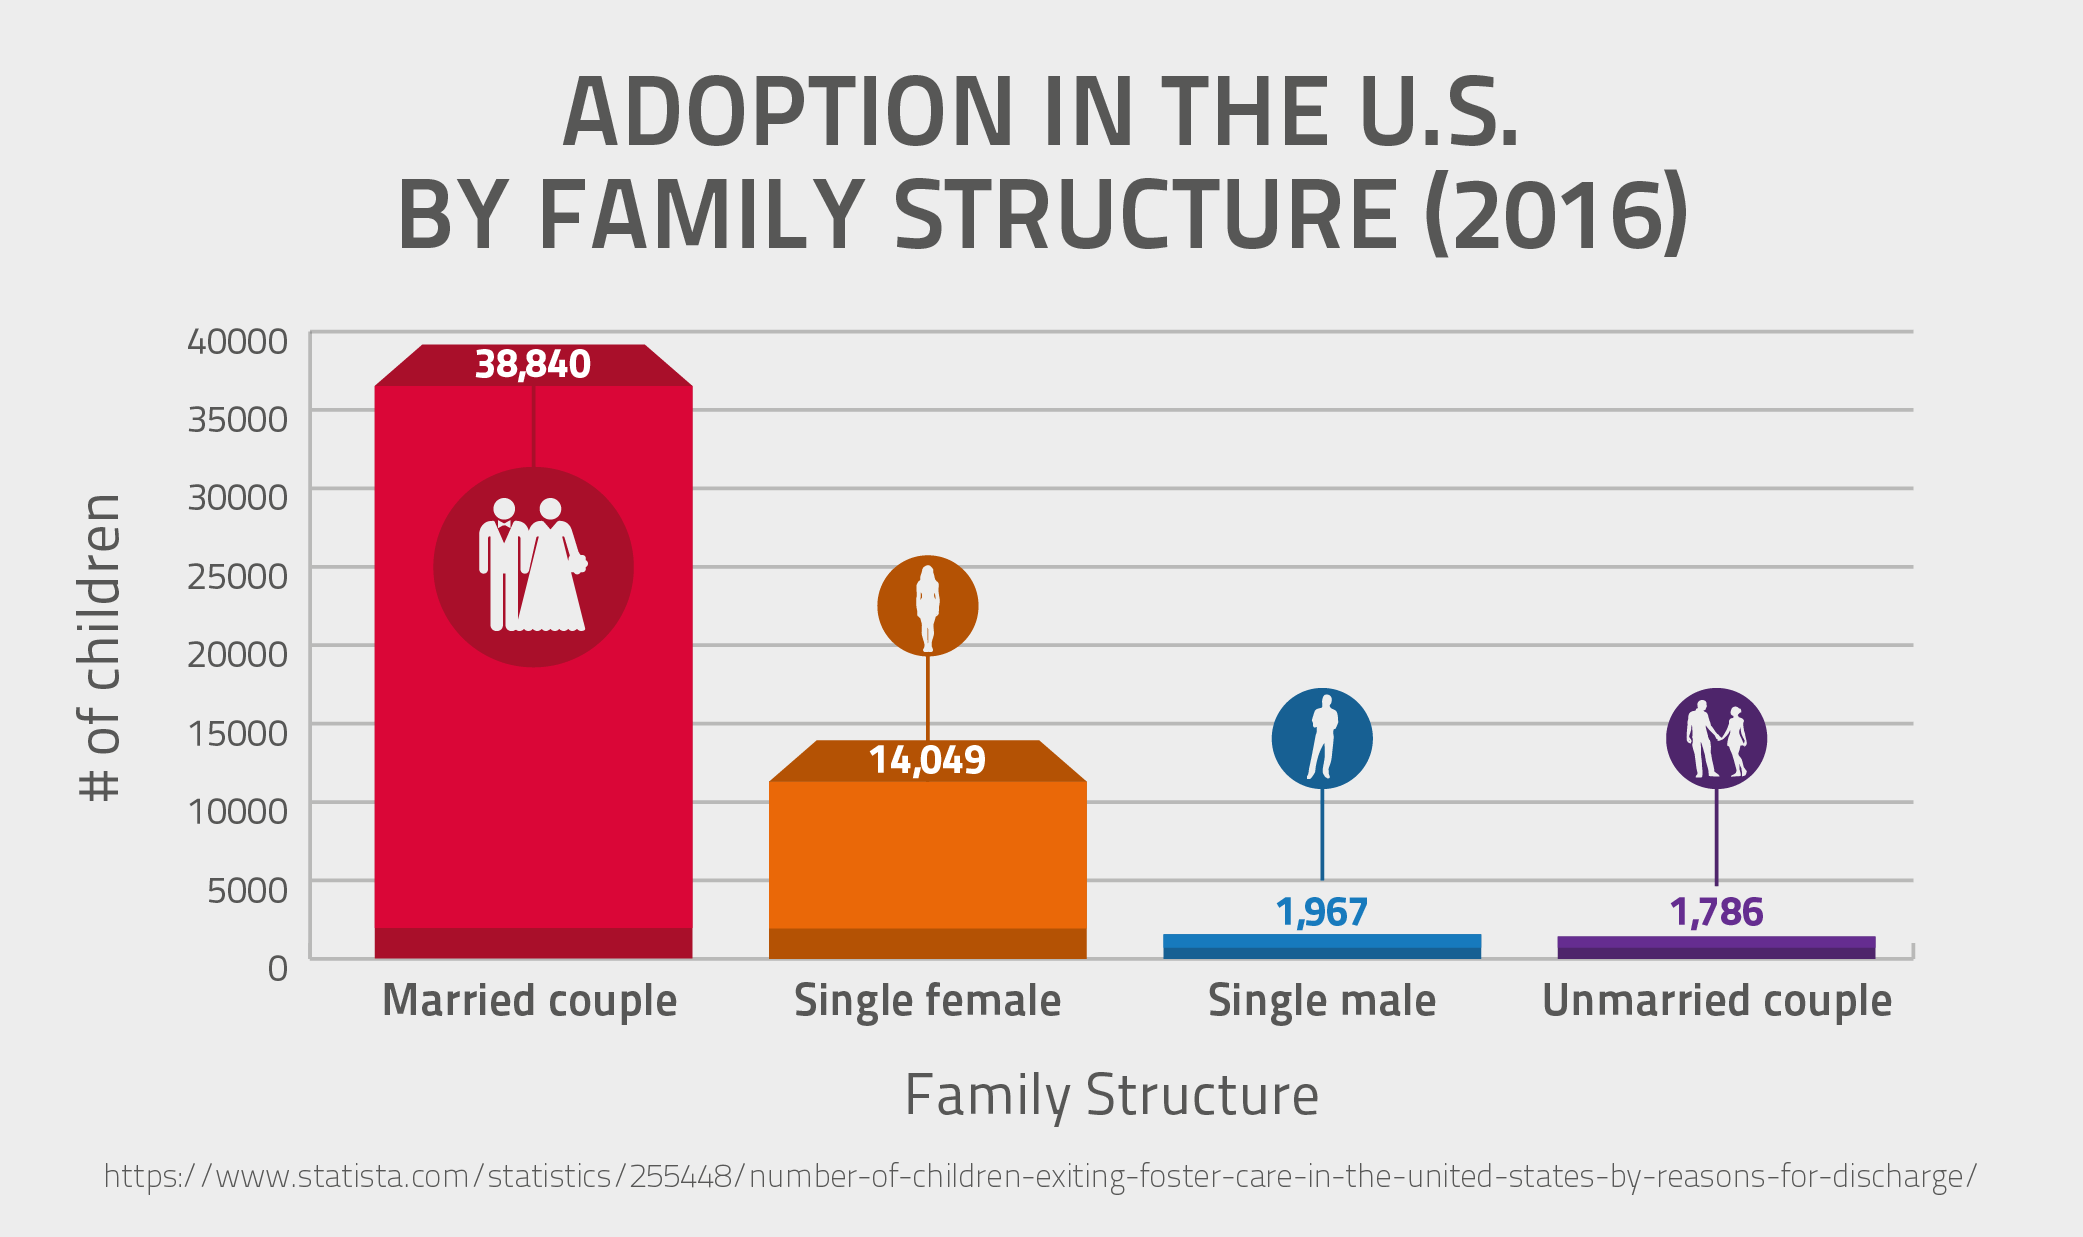 Adoption in the U.S. By Family Structure (2016)